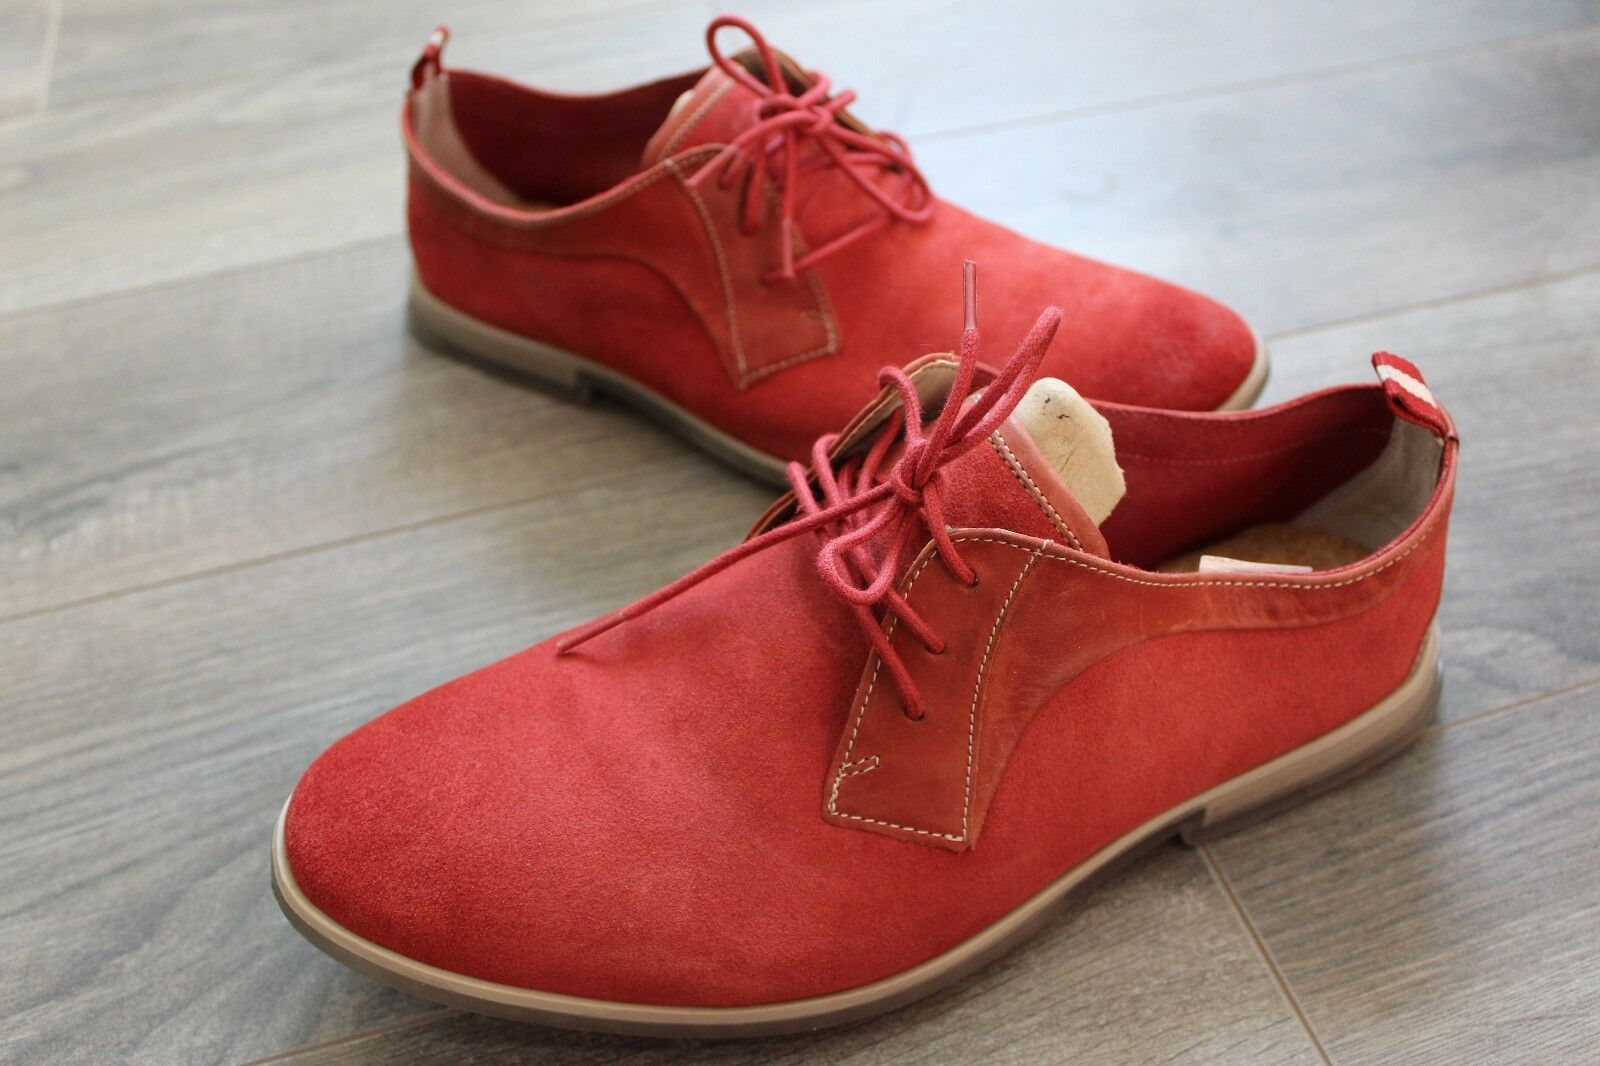 Men's Clarks Frewick Lace Brick Red Suede Casual shoes Size 8